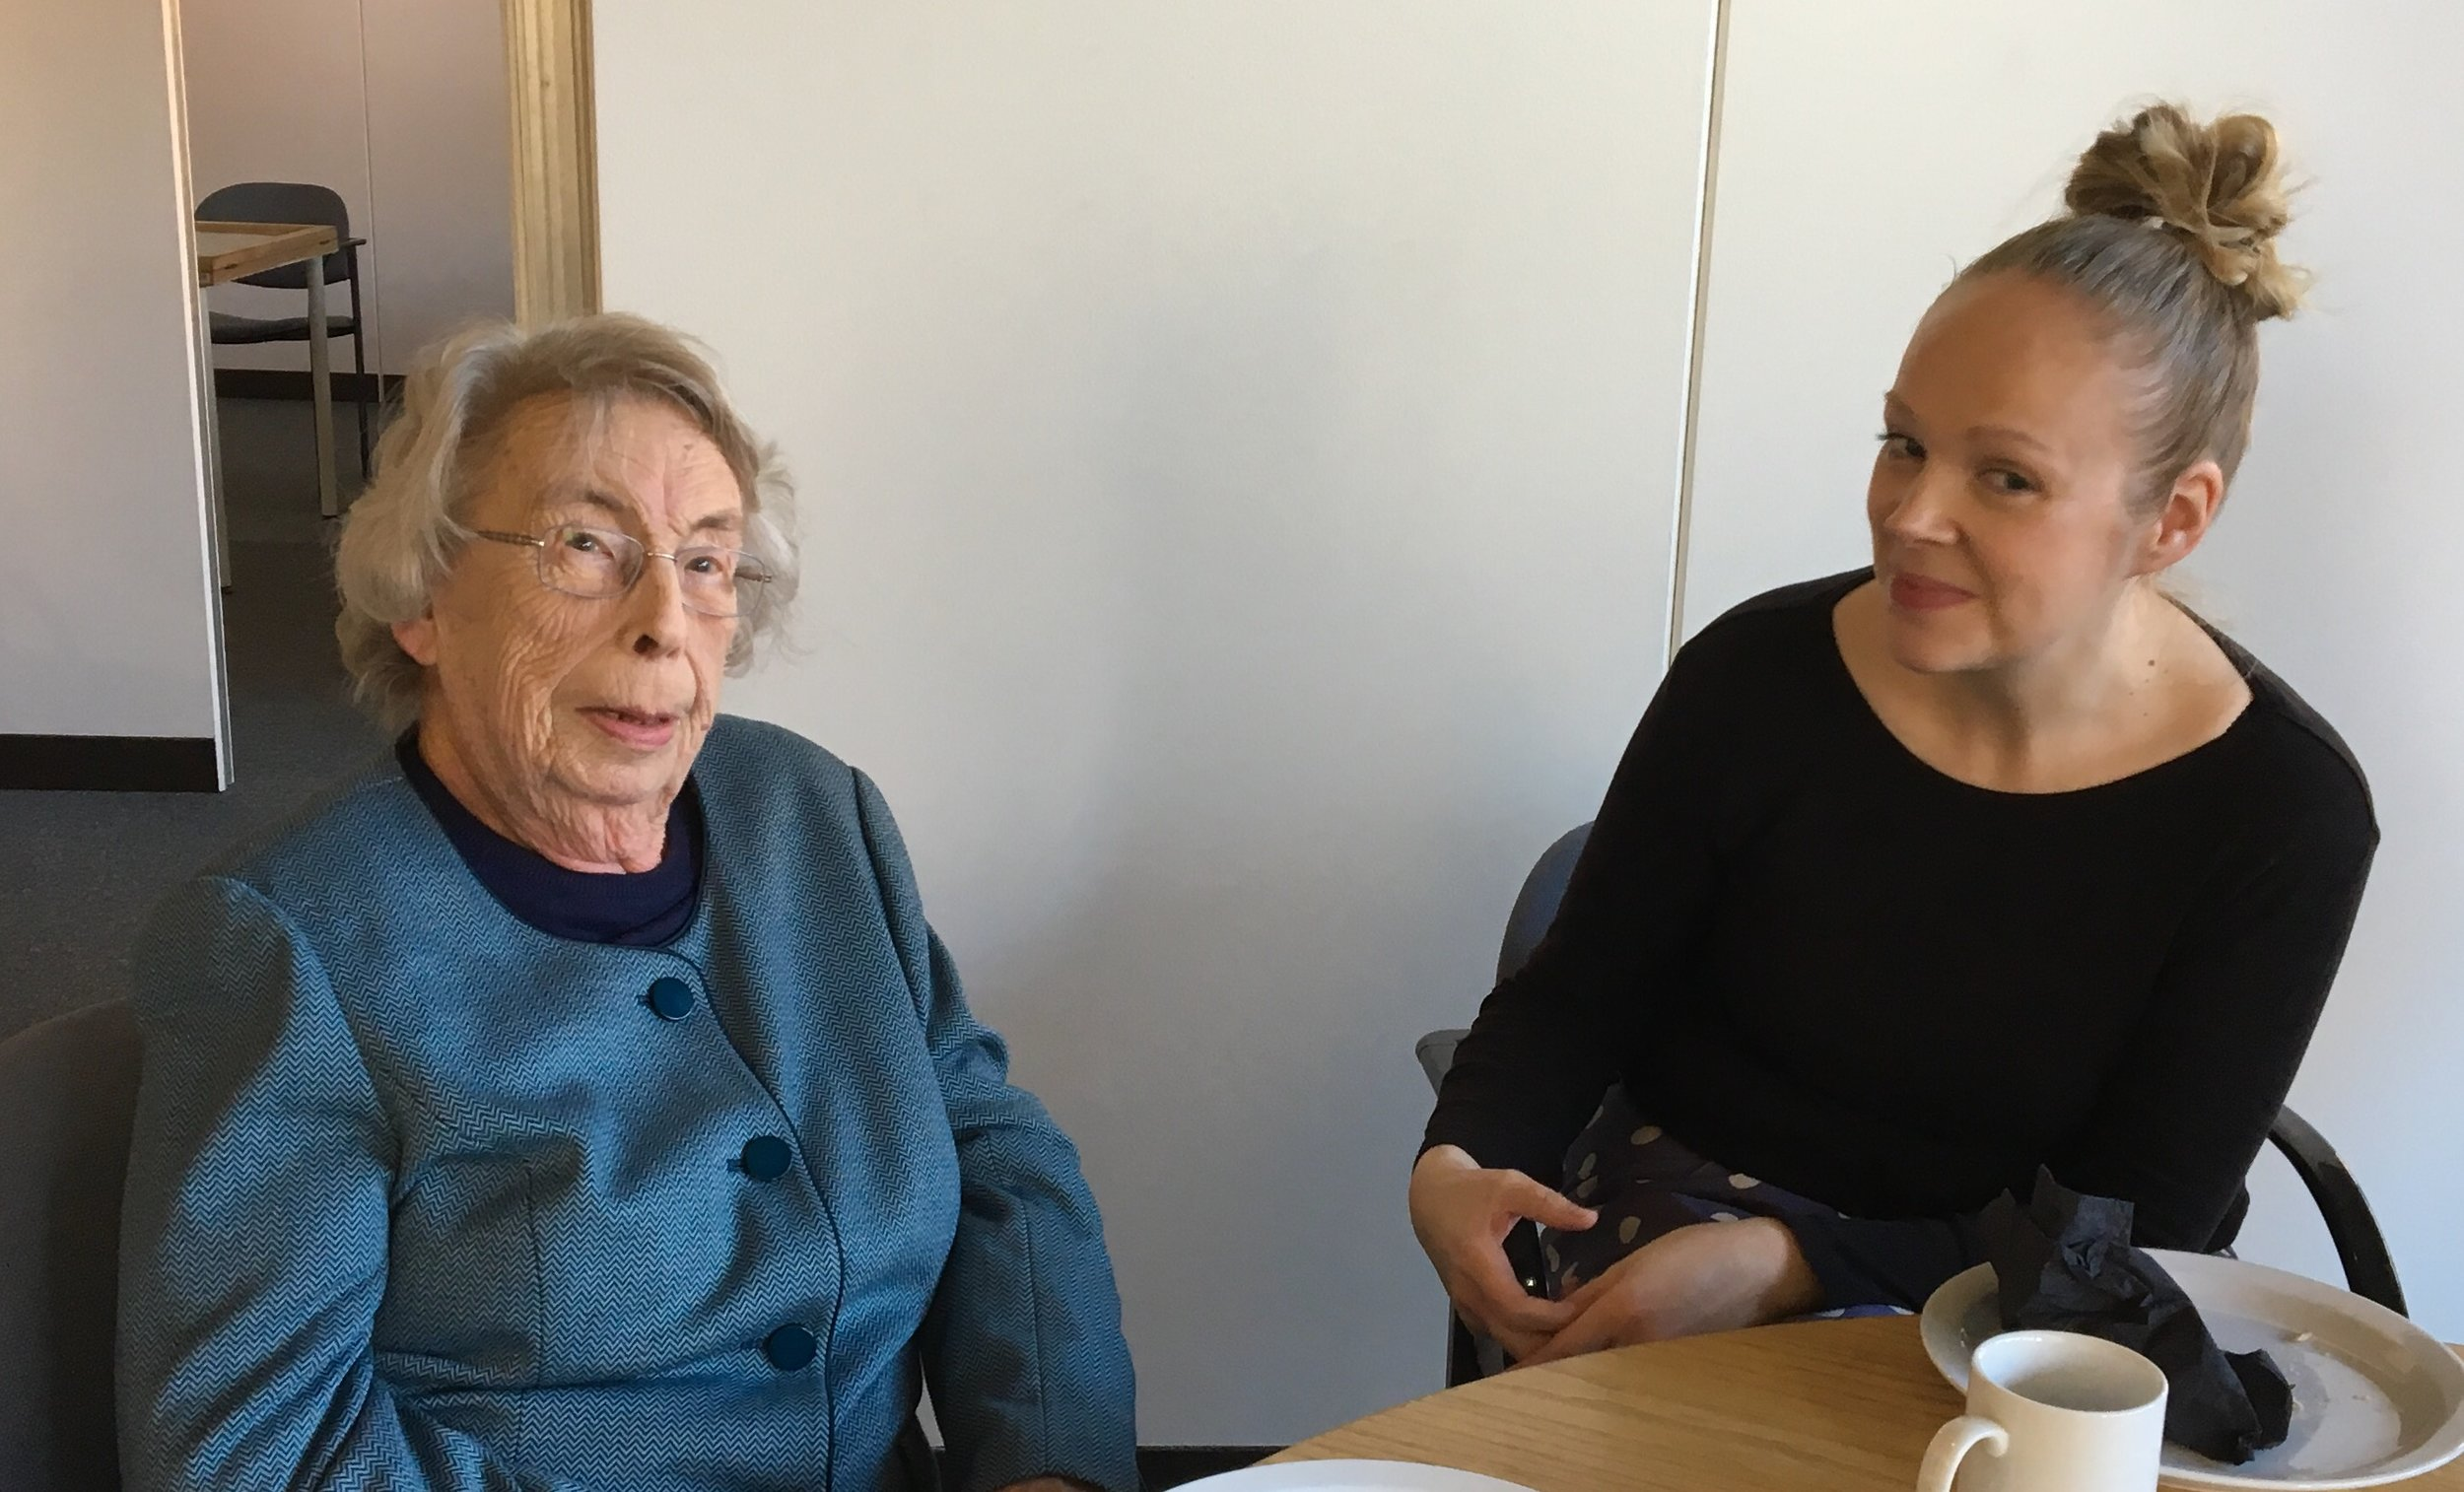 Sheila Mackie and Allie Mills having lunch after the seminar at NAEA